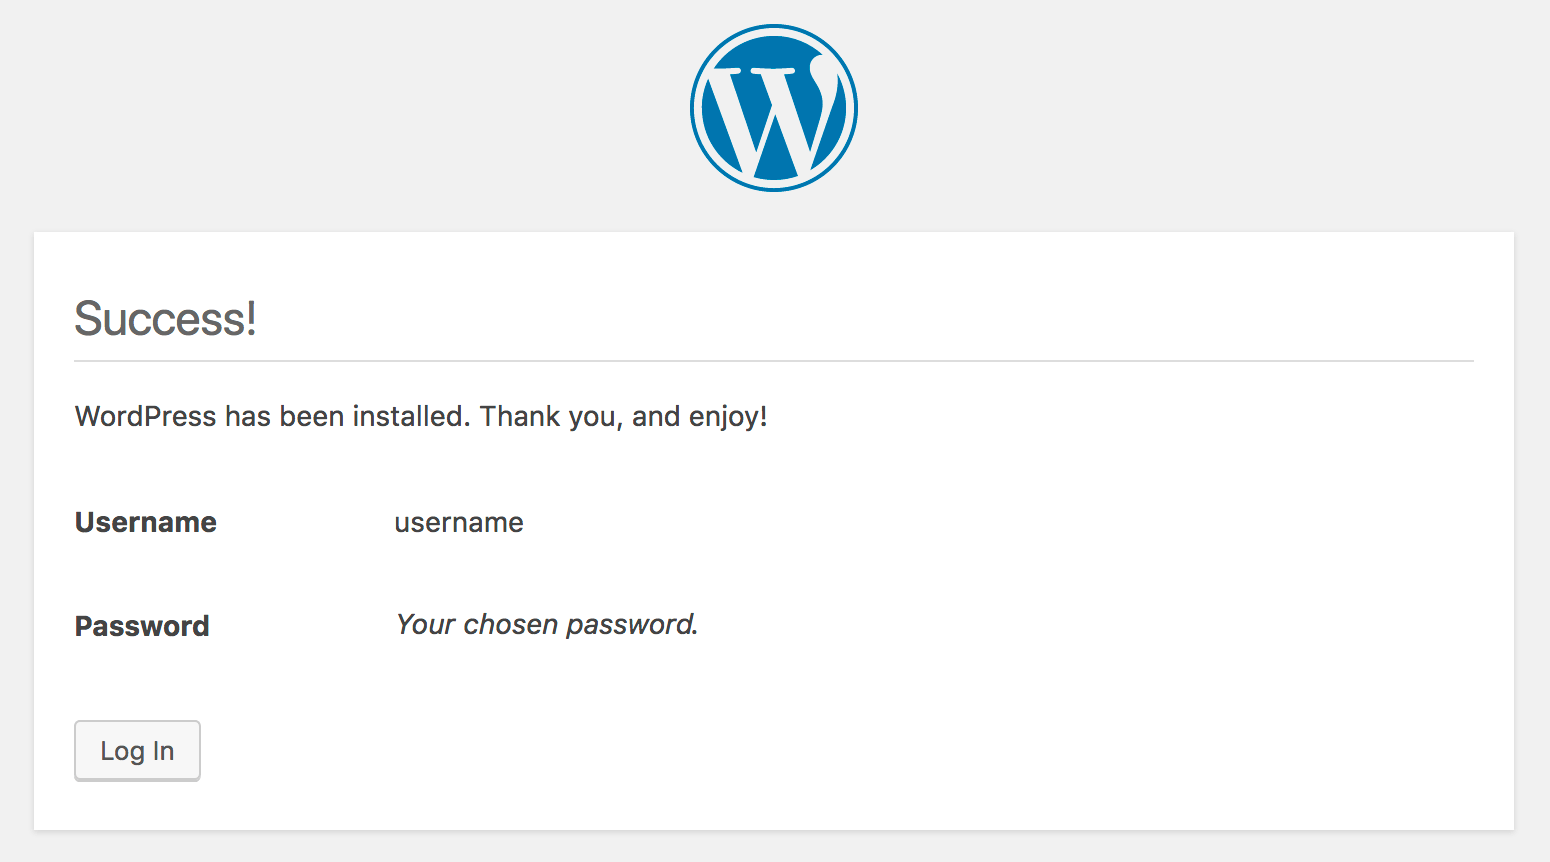 WordPress' success message.